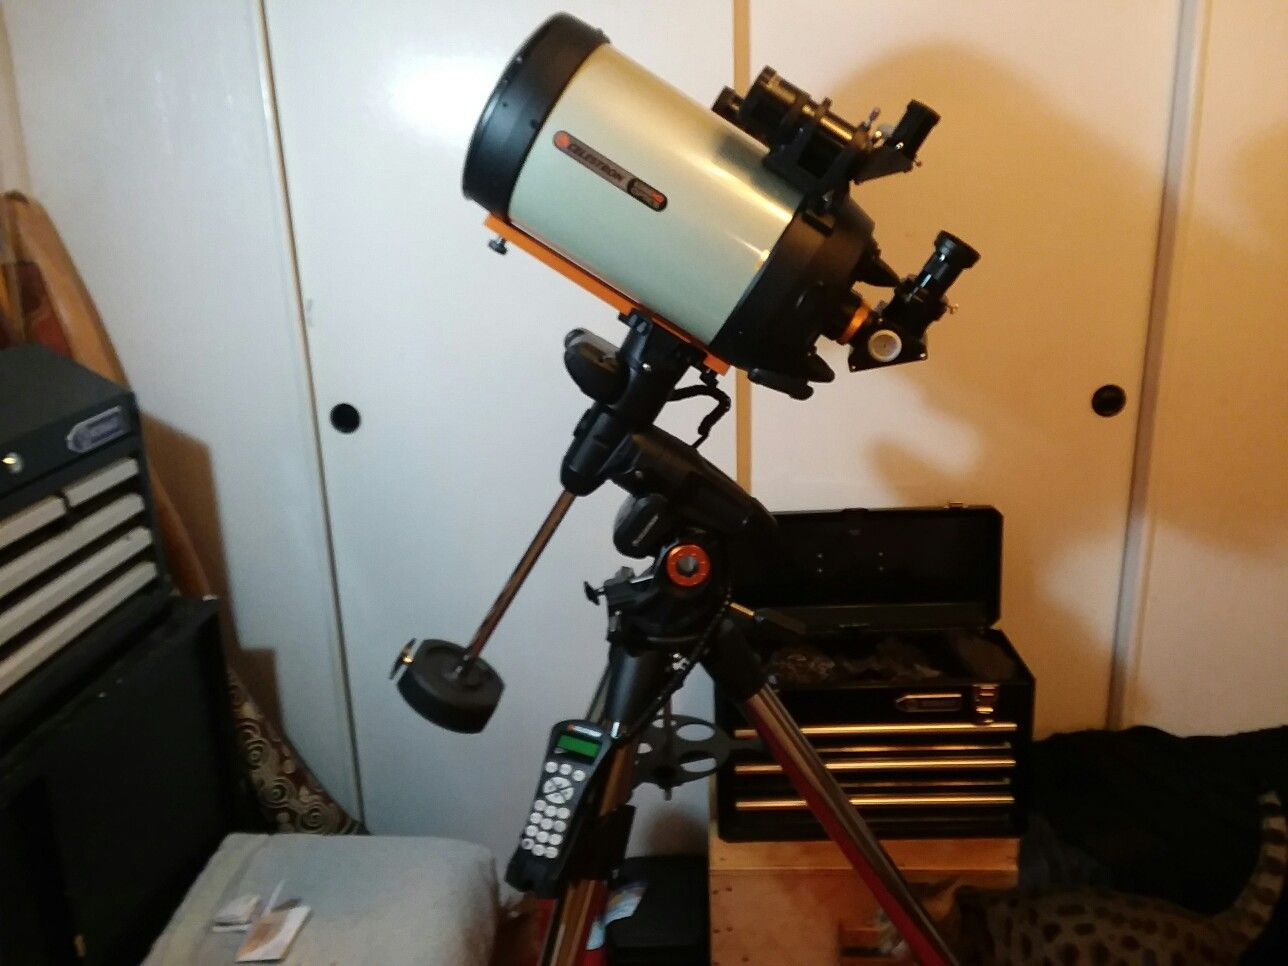 My new Celstron 8 inch HD edge telescope and mount, from